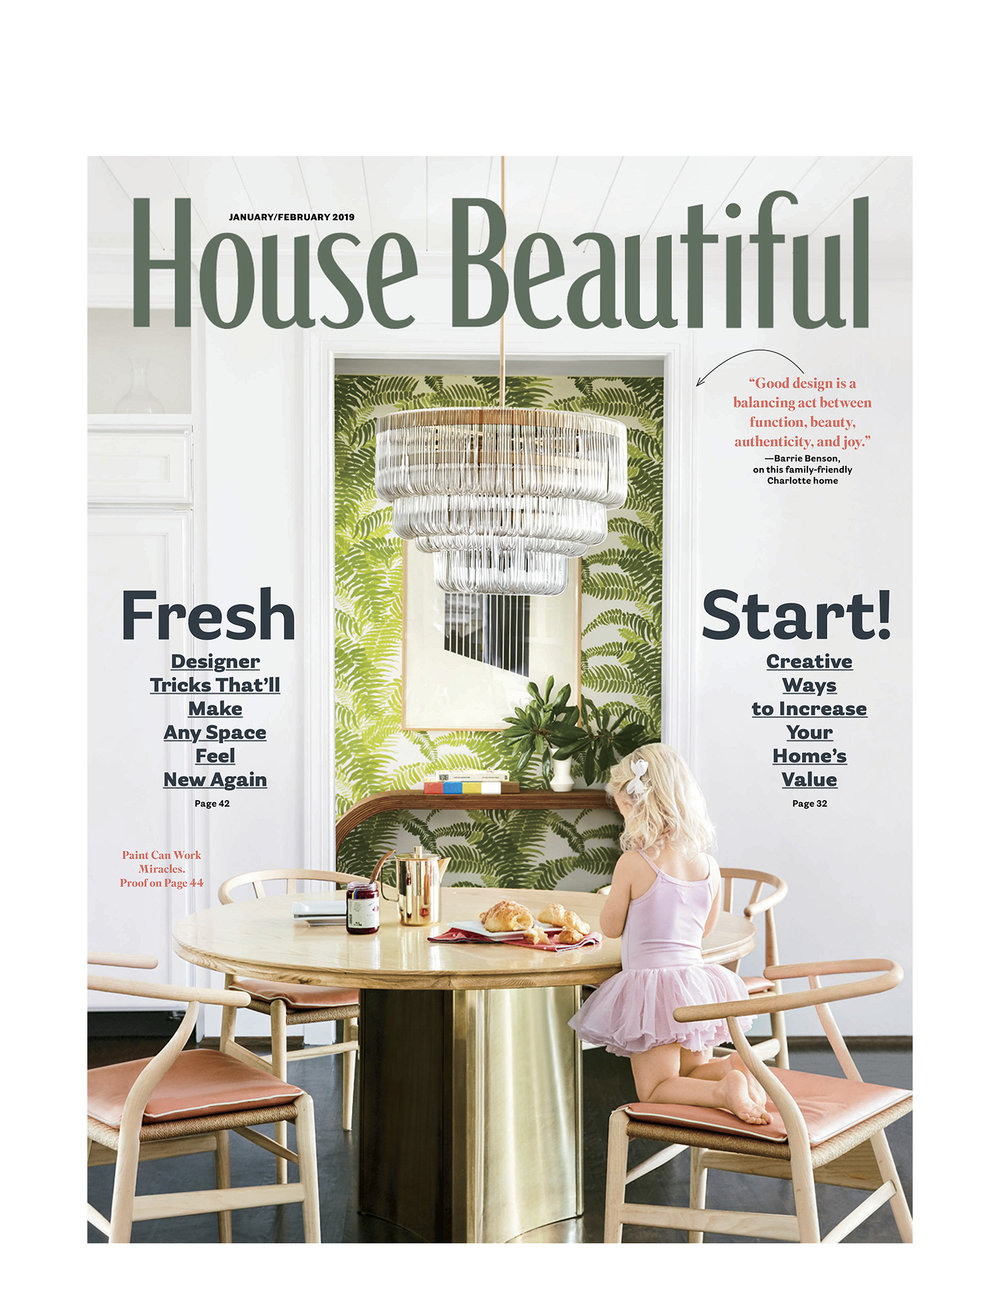 House Beautiful Jan/Feb 2019 Design: Barrie Benson